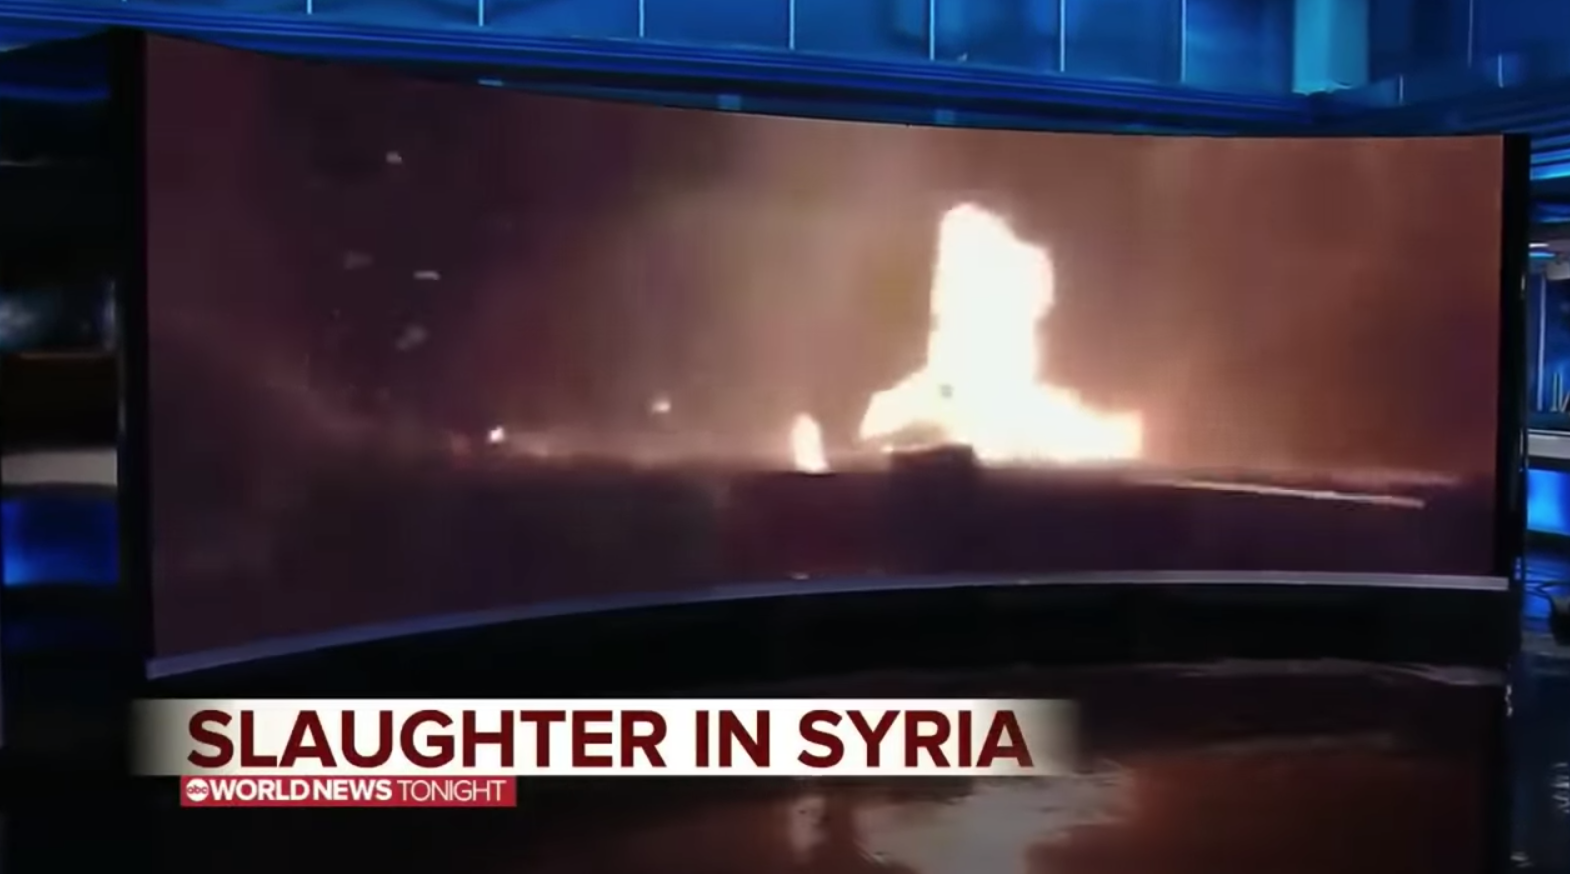 'Disinformation': Kentucky video ABC said was 'slaughter in Syria' was spread by Turkish politician